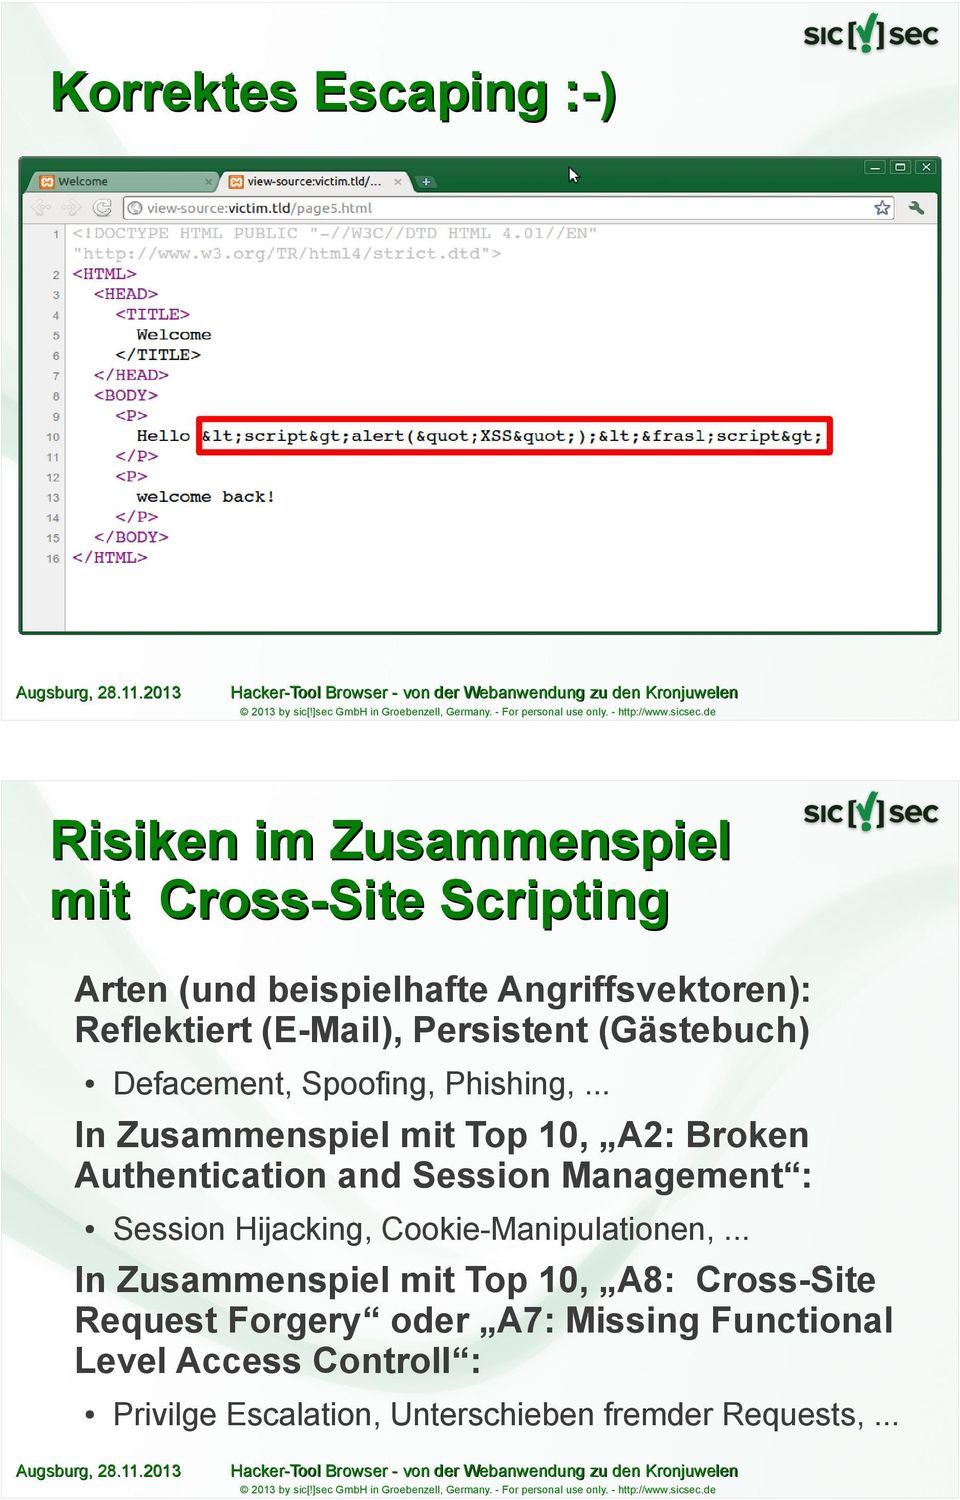 .. In Zusammenspiel mit Top 10, A2: Broken Authentication and Session Management : Session Hijacking, Cookie-Manipulationen,.